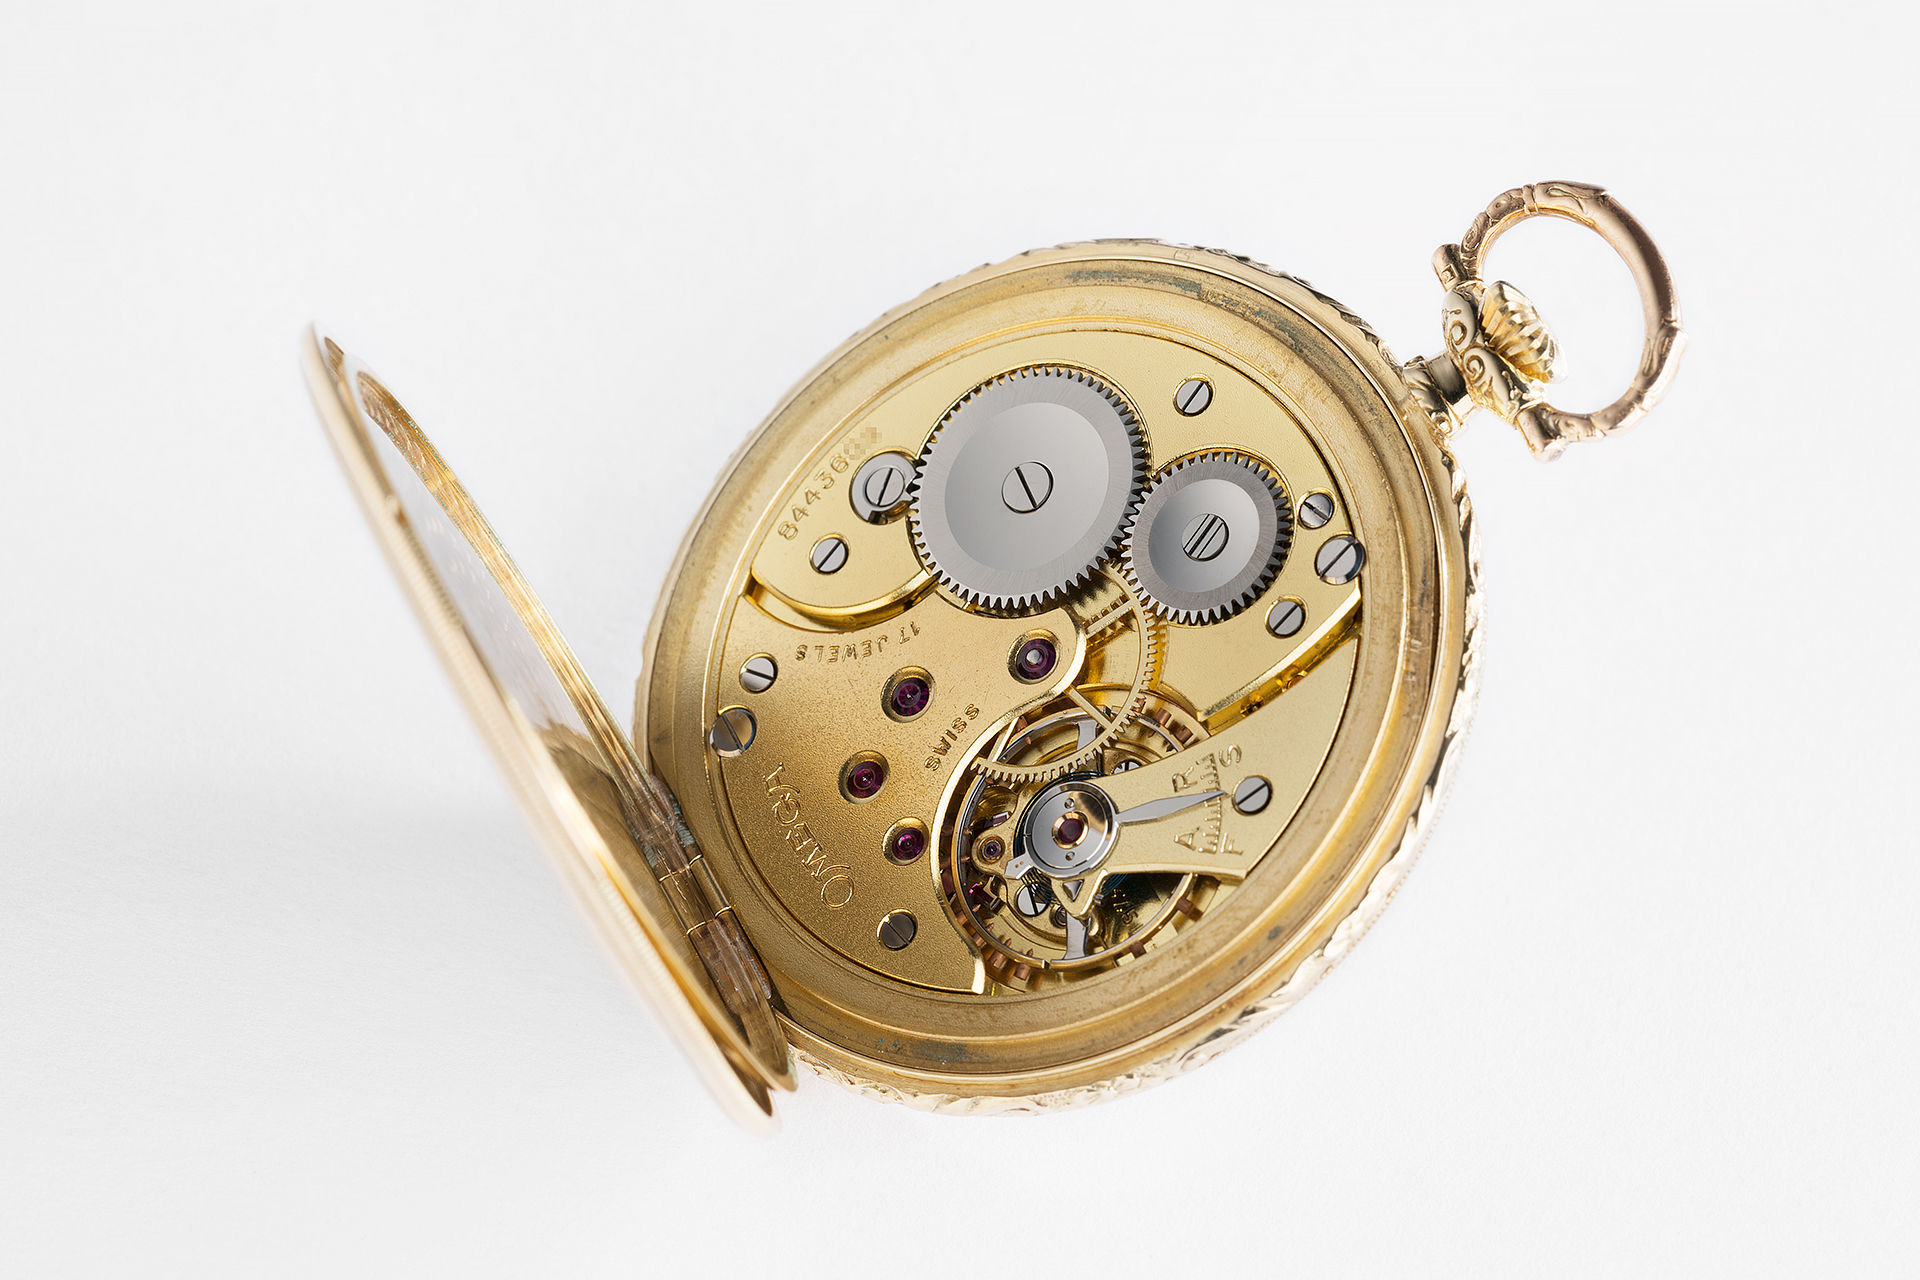 ref OK1042 | 14ct 'Frosted Dial' | Omega Pocket Watch